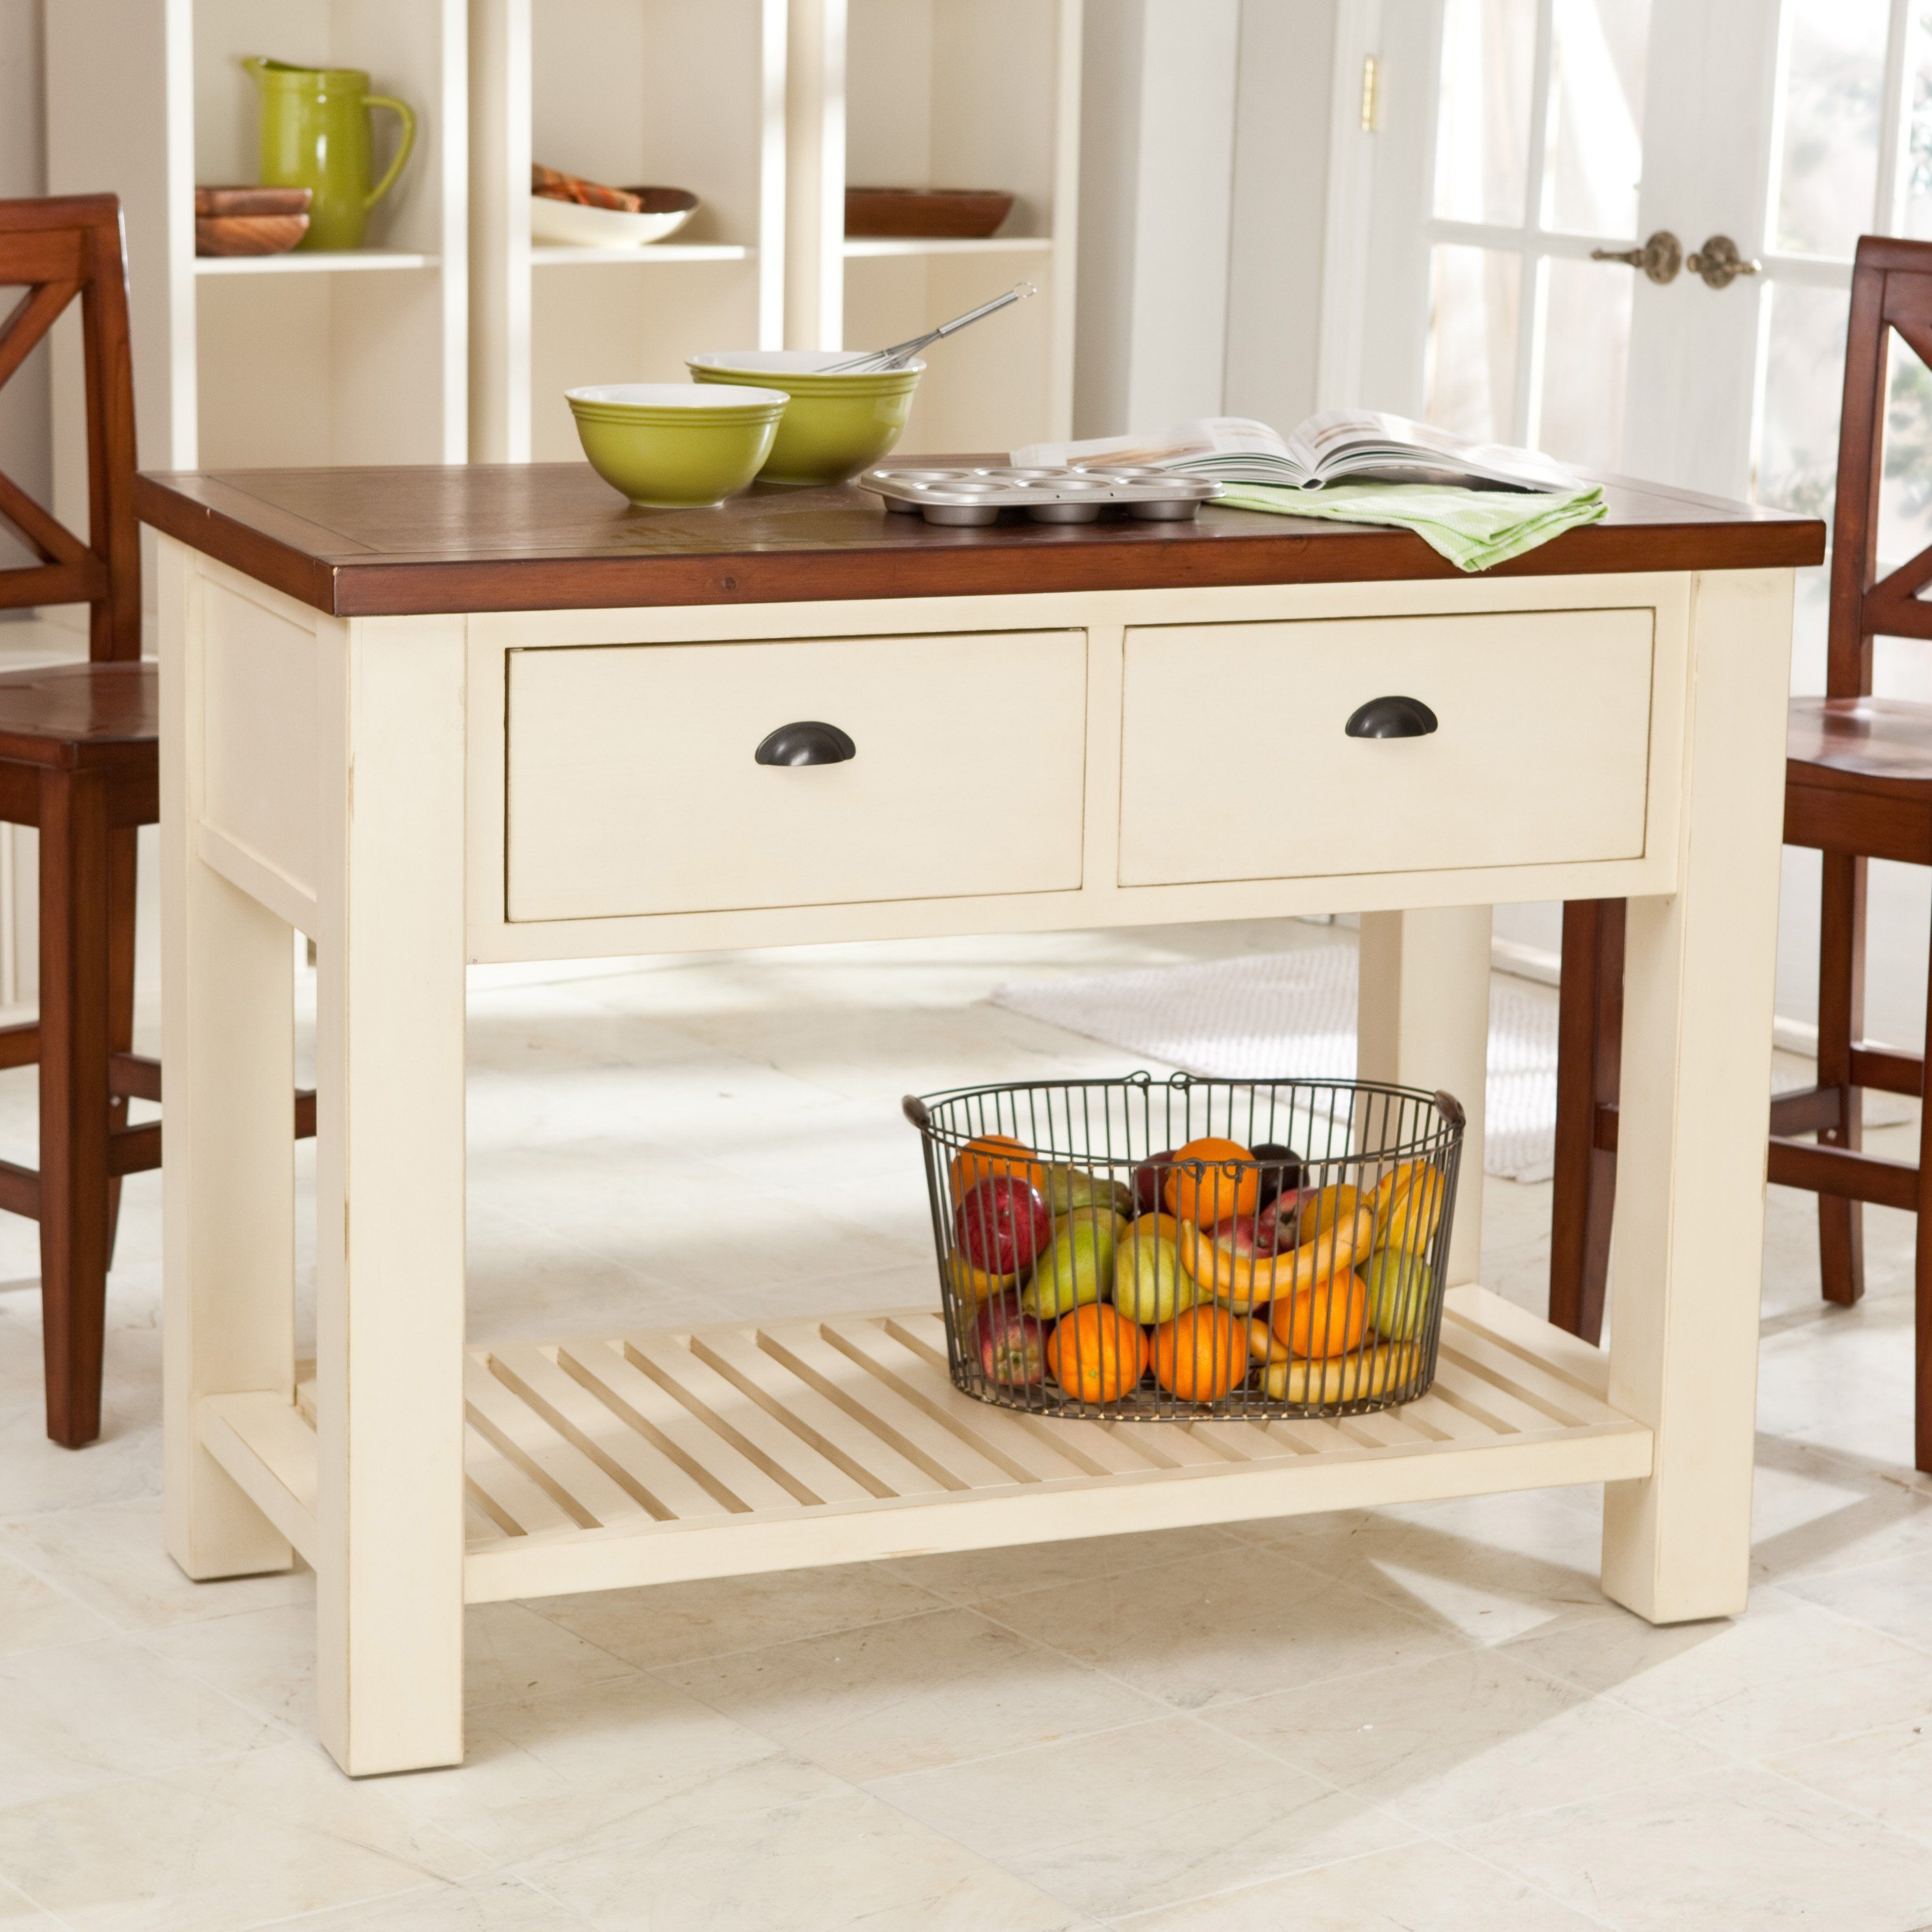 Mobile kitchen island  Belham Living Carlton Kitchen Island with PassThrough Drawers